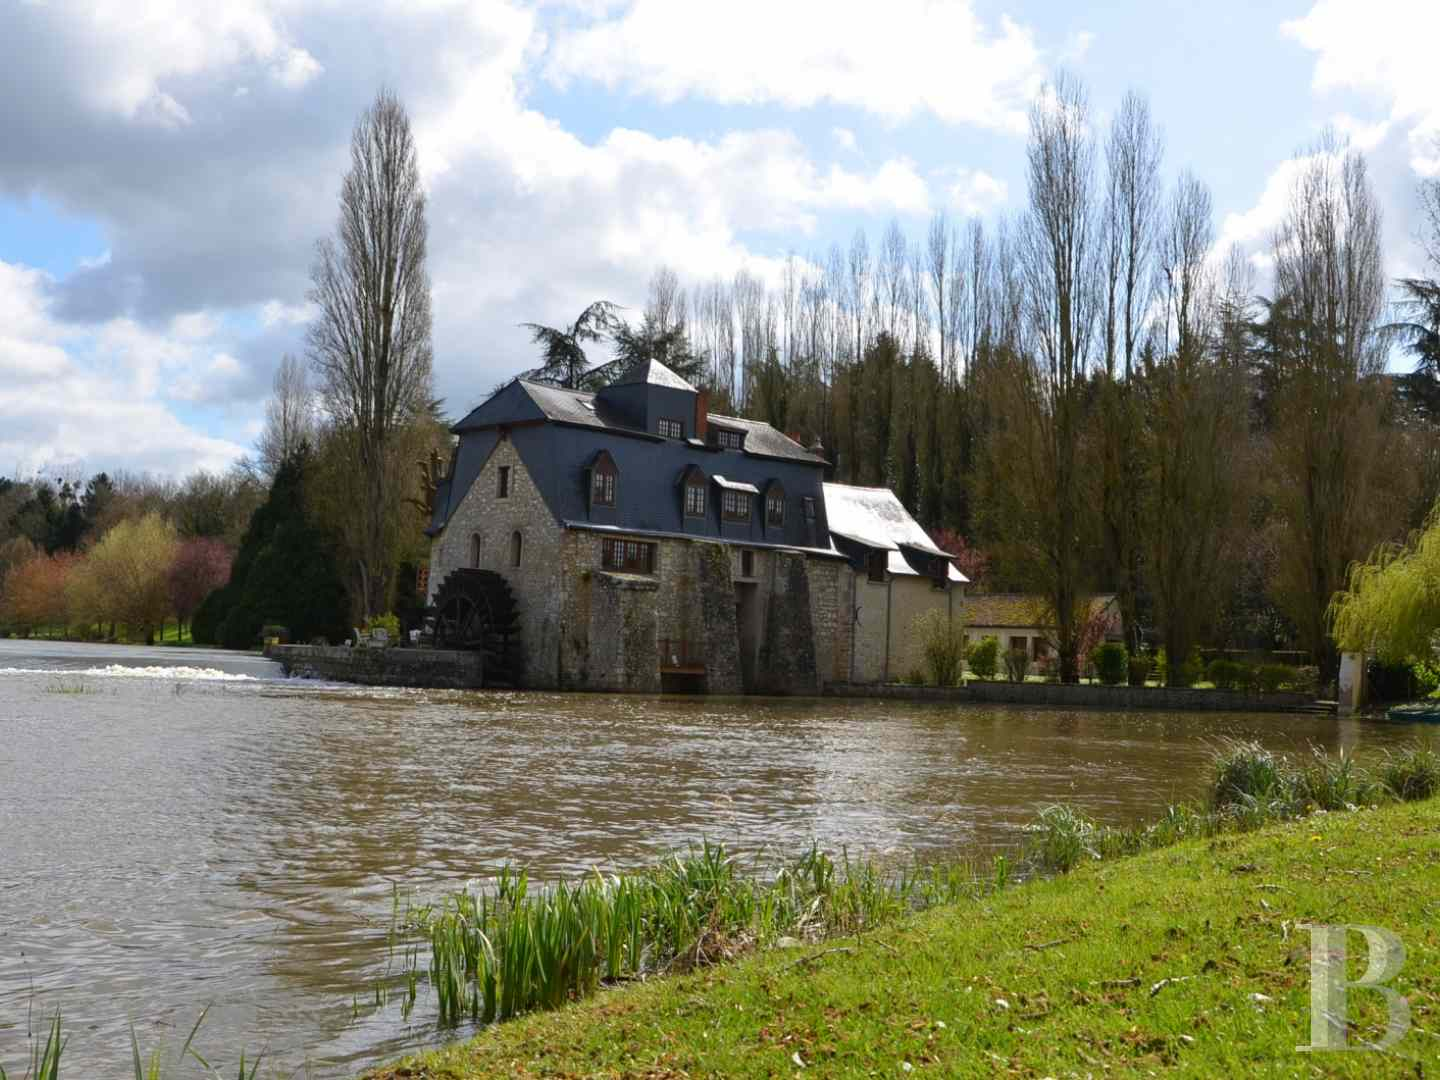 mills for sale France pays de loire 17th mill - 2 zoom